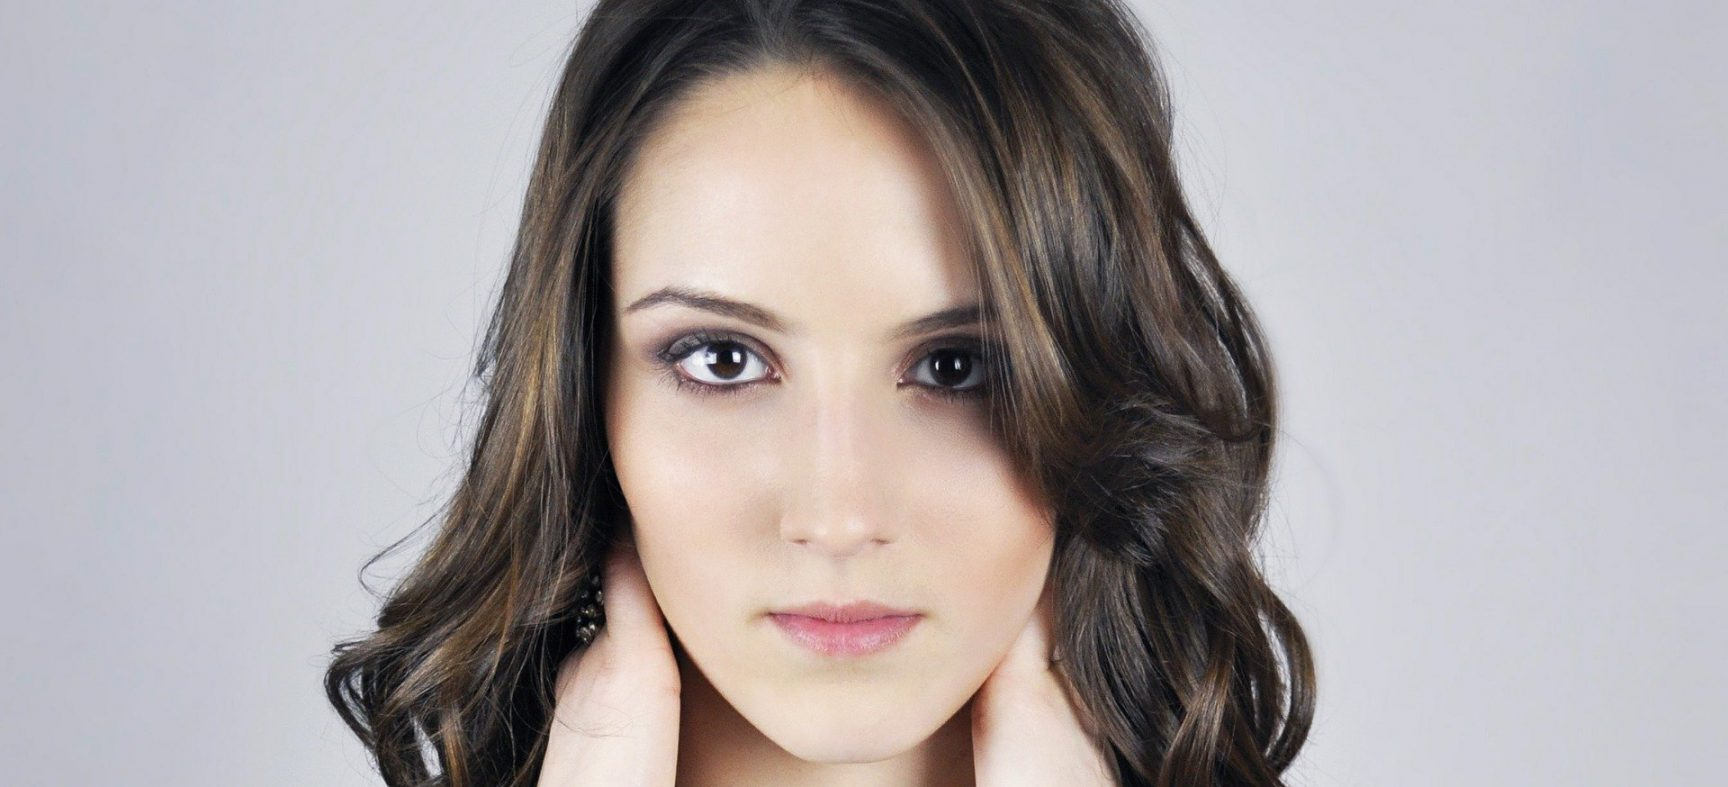 Effective Beauty tips to get the dream glowing skin and gorgeous look